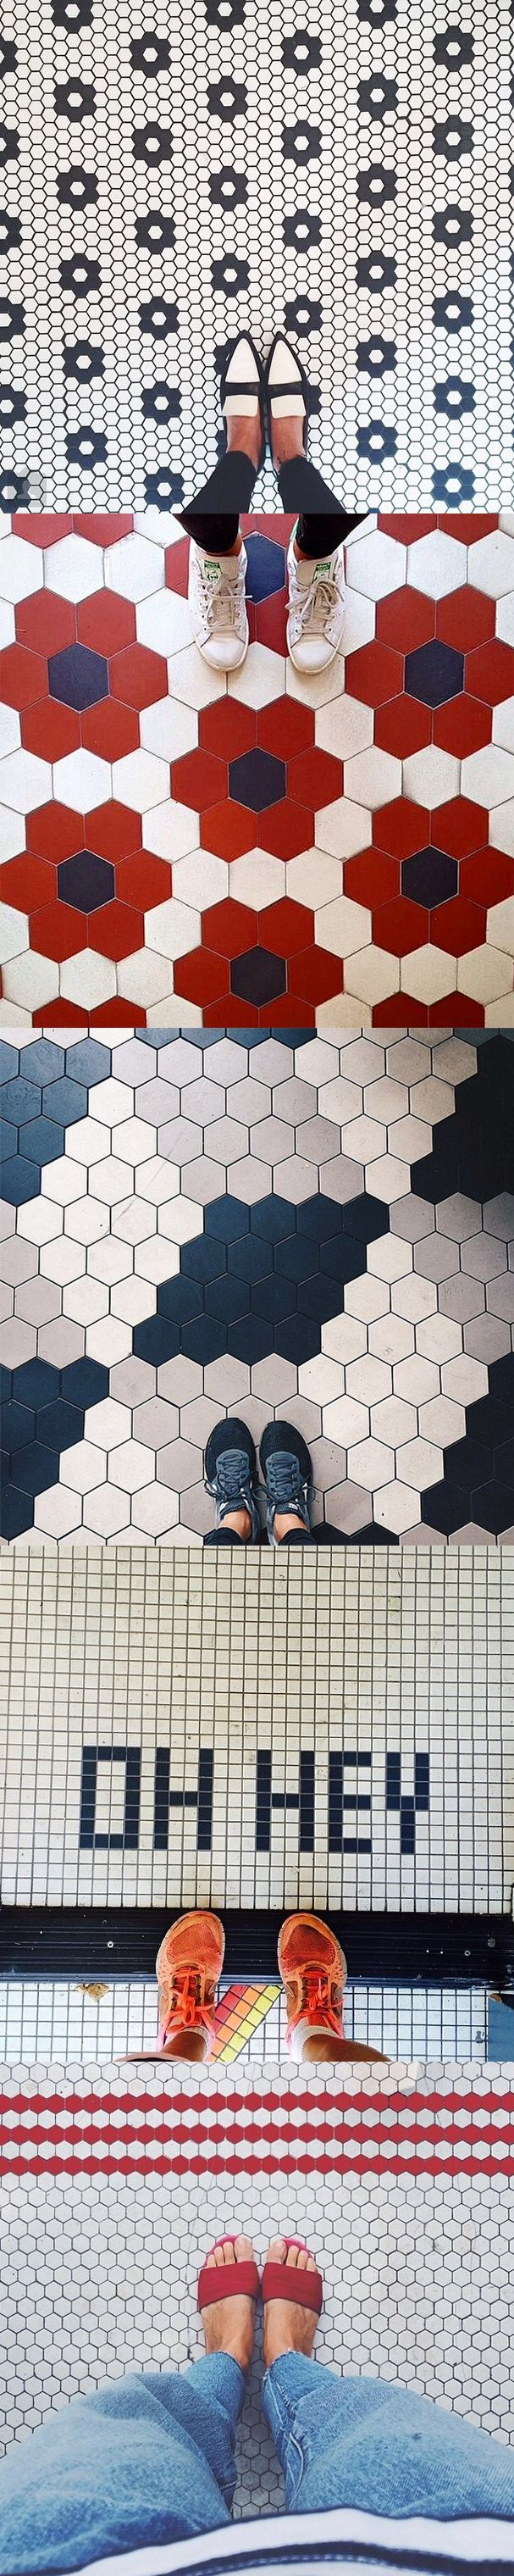 nice floors by ihavethisthingwithfloors www.lab333.com https://www.facebook.com/pages/LAB-STYLE/585086788169863 http://www.labs333style.com www.lablikes.tumblr.com www.pinterest.com/labstyle